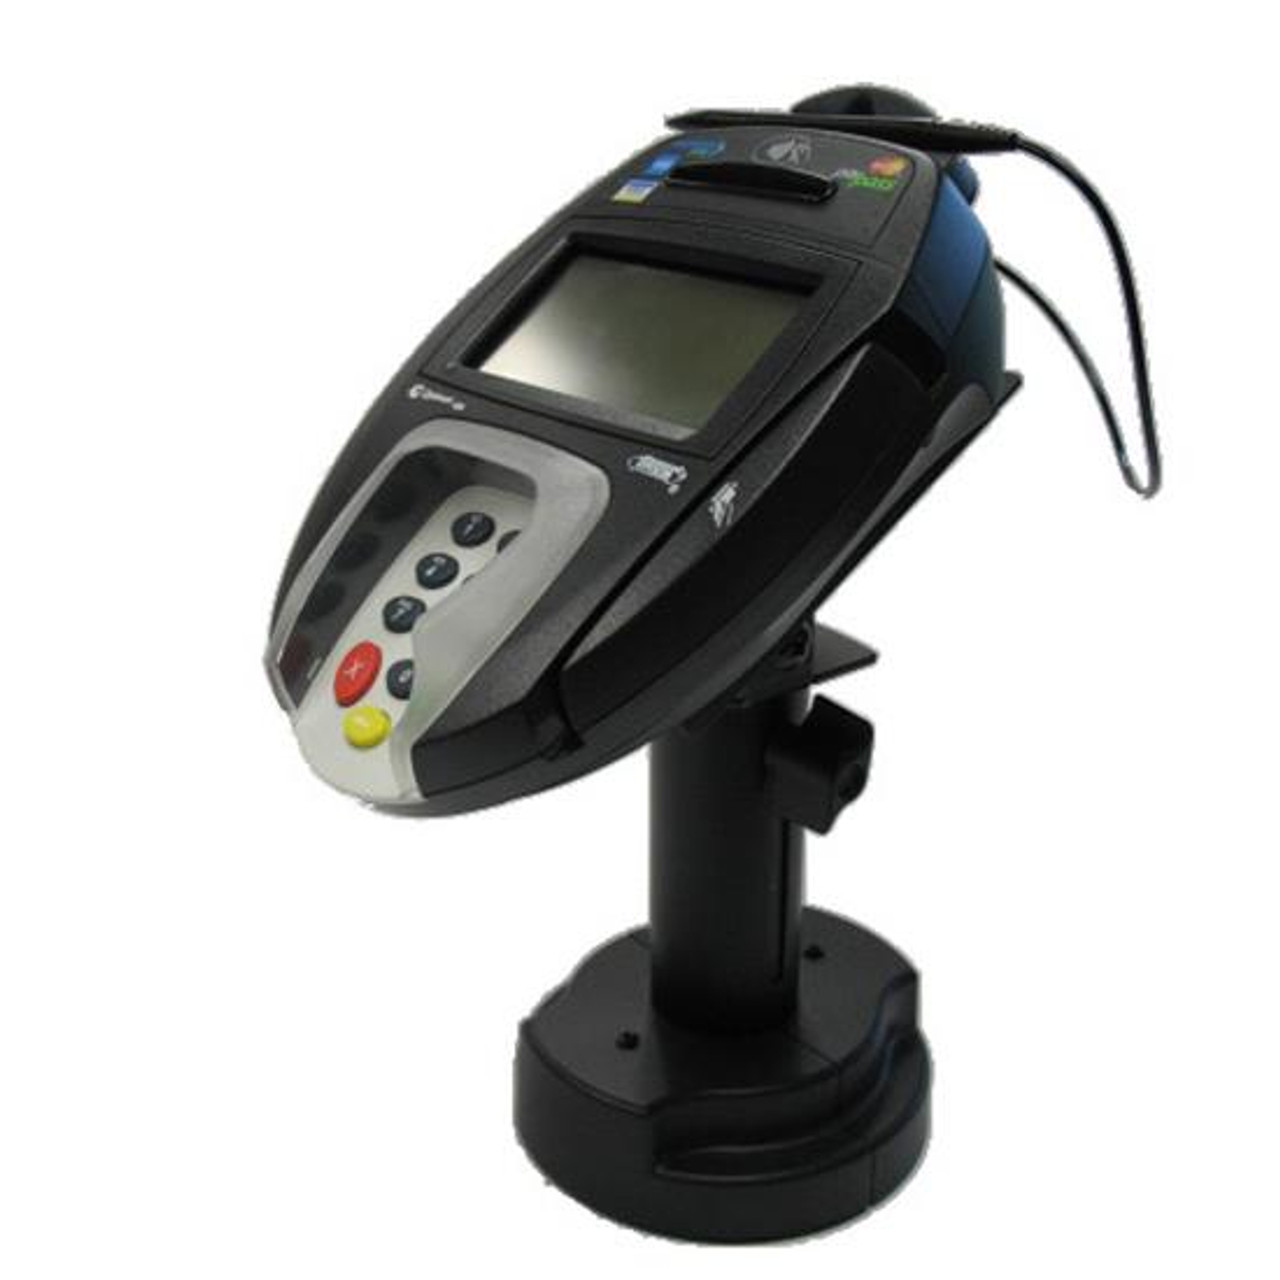 Swivel Stands Credit Card Stand Telescoping Pedestal Quick Release VeriFone MX880